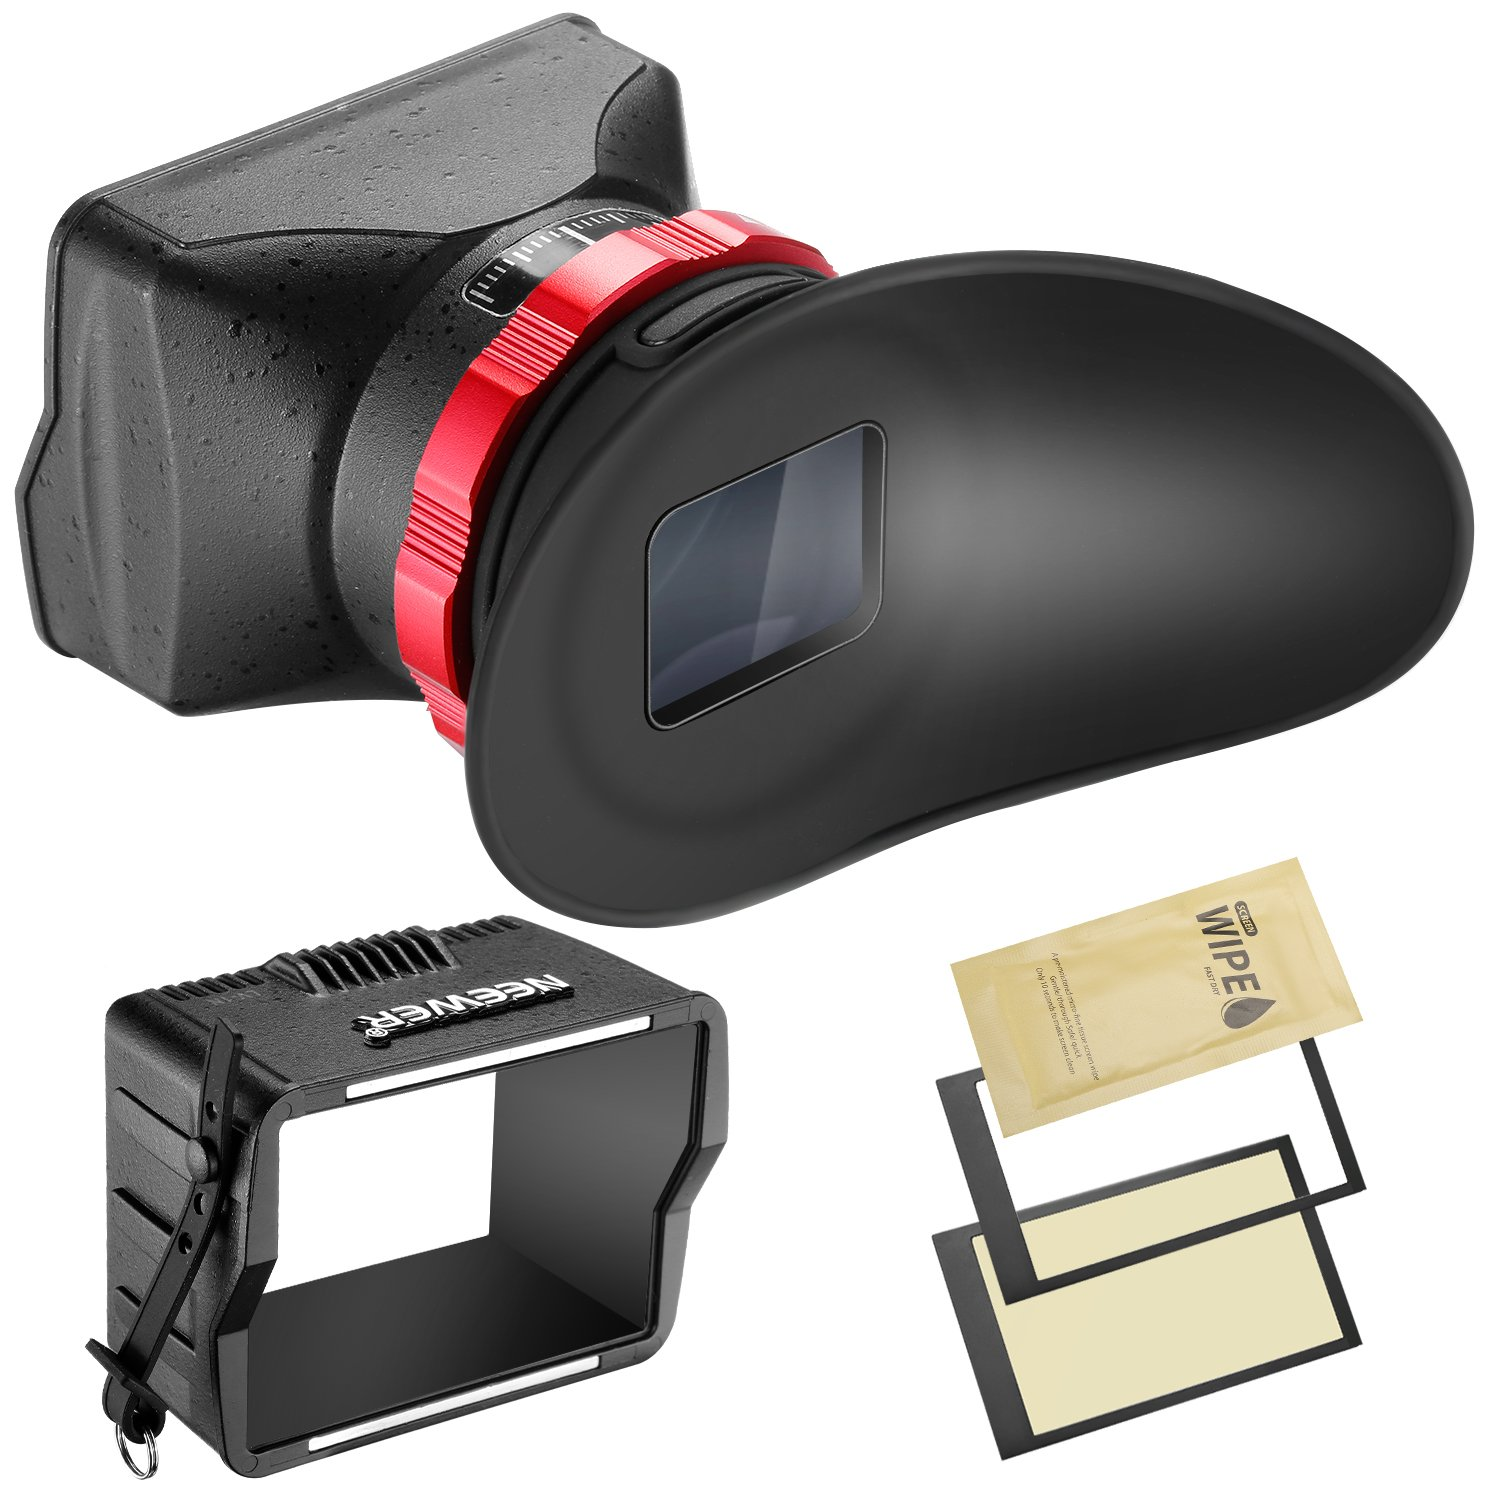 Neewer S7 3-in-1 Pro Optical Viewfinder,Screen Protector,Sunshade Hood with 3X Magnification for Sony A7RII, A7II, A7, A7R, A7M2, A7R2, A7M3, A7R3, A7s, A7s2, A7s3 and Other DSLRs with 3'' LCD Screen by Neewer (Image #2)